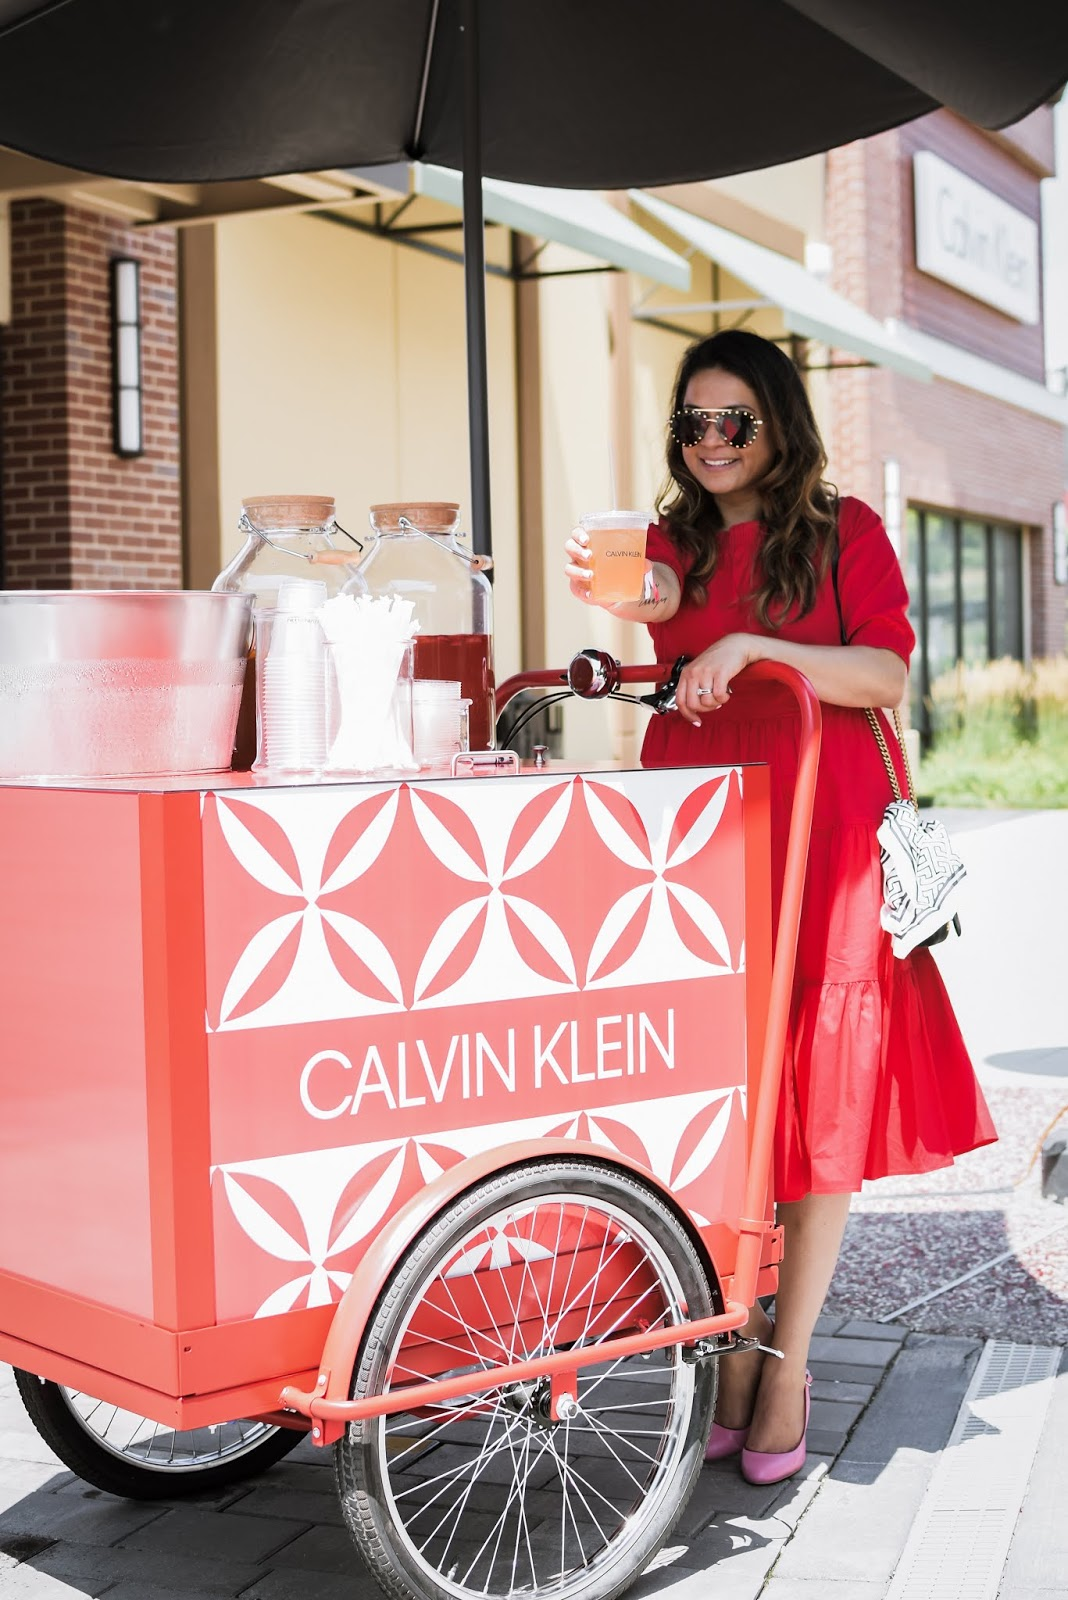 clarksburg premium outlets, shopping day, DC blogger, shoppinh haul summer, designer shopping, red kim and proper dress, red tiered dress, stripe heels, studded sunglasses, hair curls, myriad musings, summer of likes event